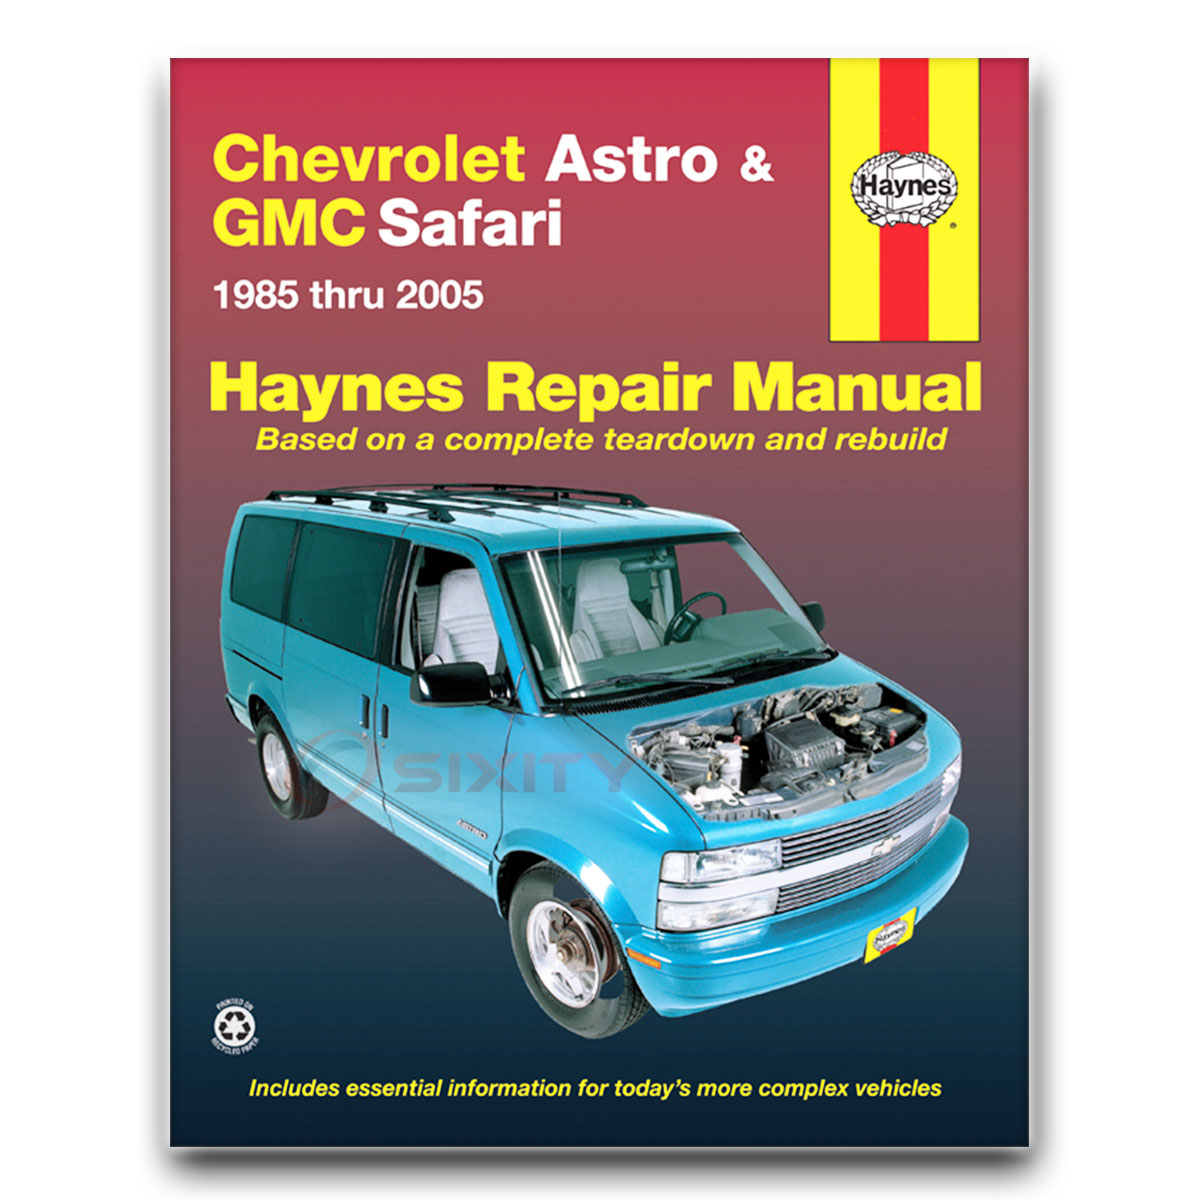 hight resolution of haynes repair manual 24010 for chevrolet astro gmc safari mini van astro van engine diagram astro van wiper wiring diagram